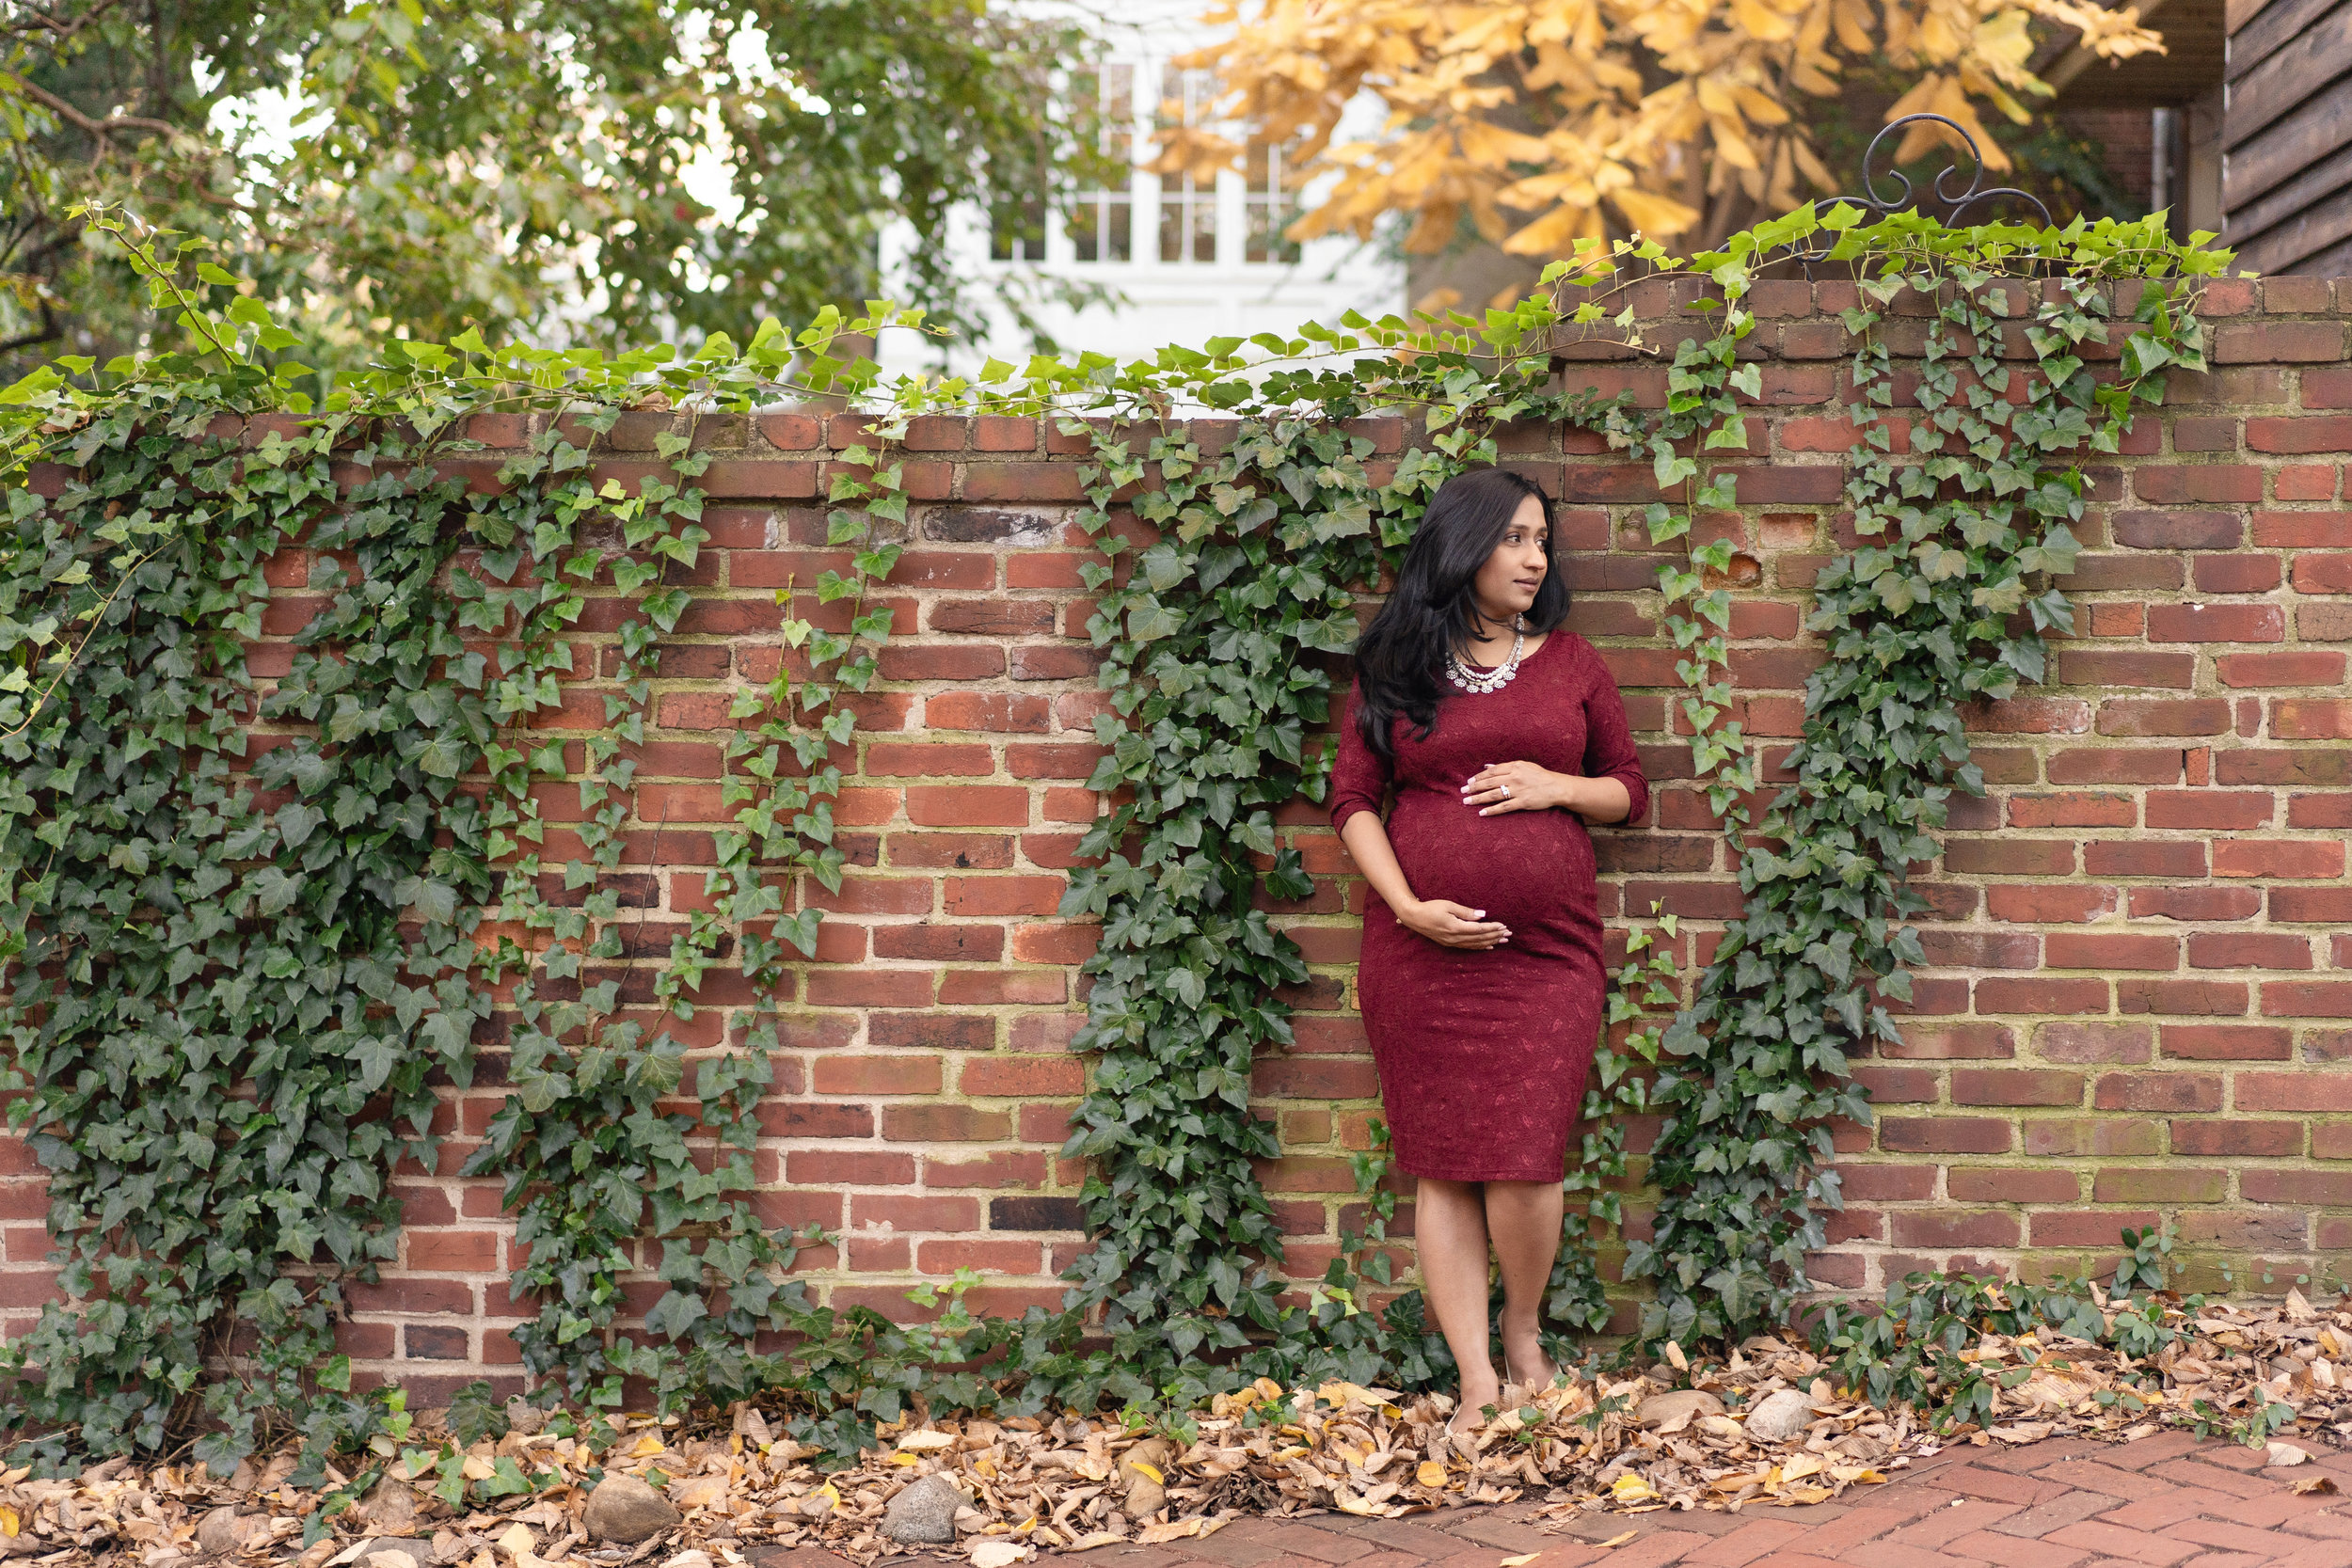 Best Loudoun county photographer, katy hayes, captures a stunning mom to be against a brick wall in old town Alexandria during her maternity session